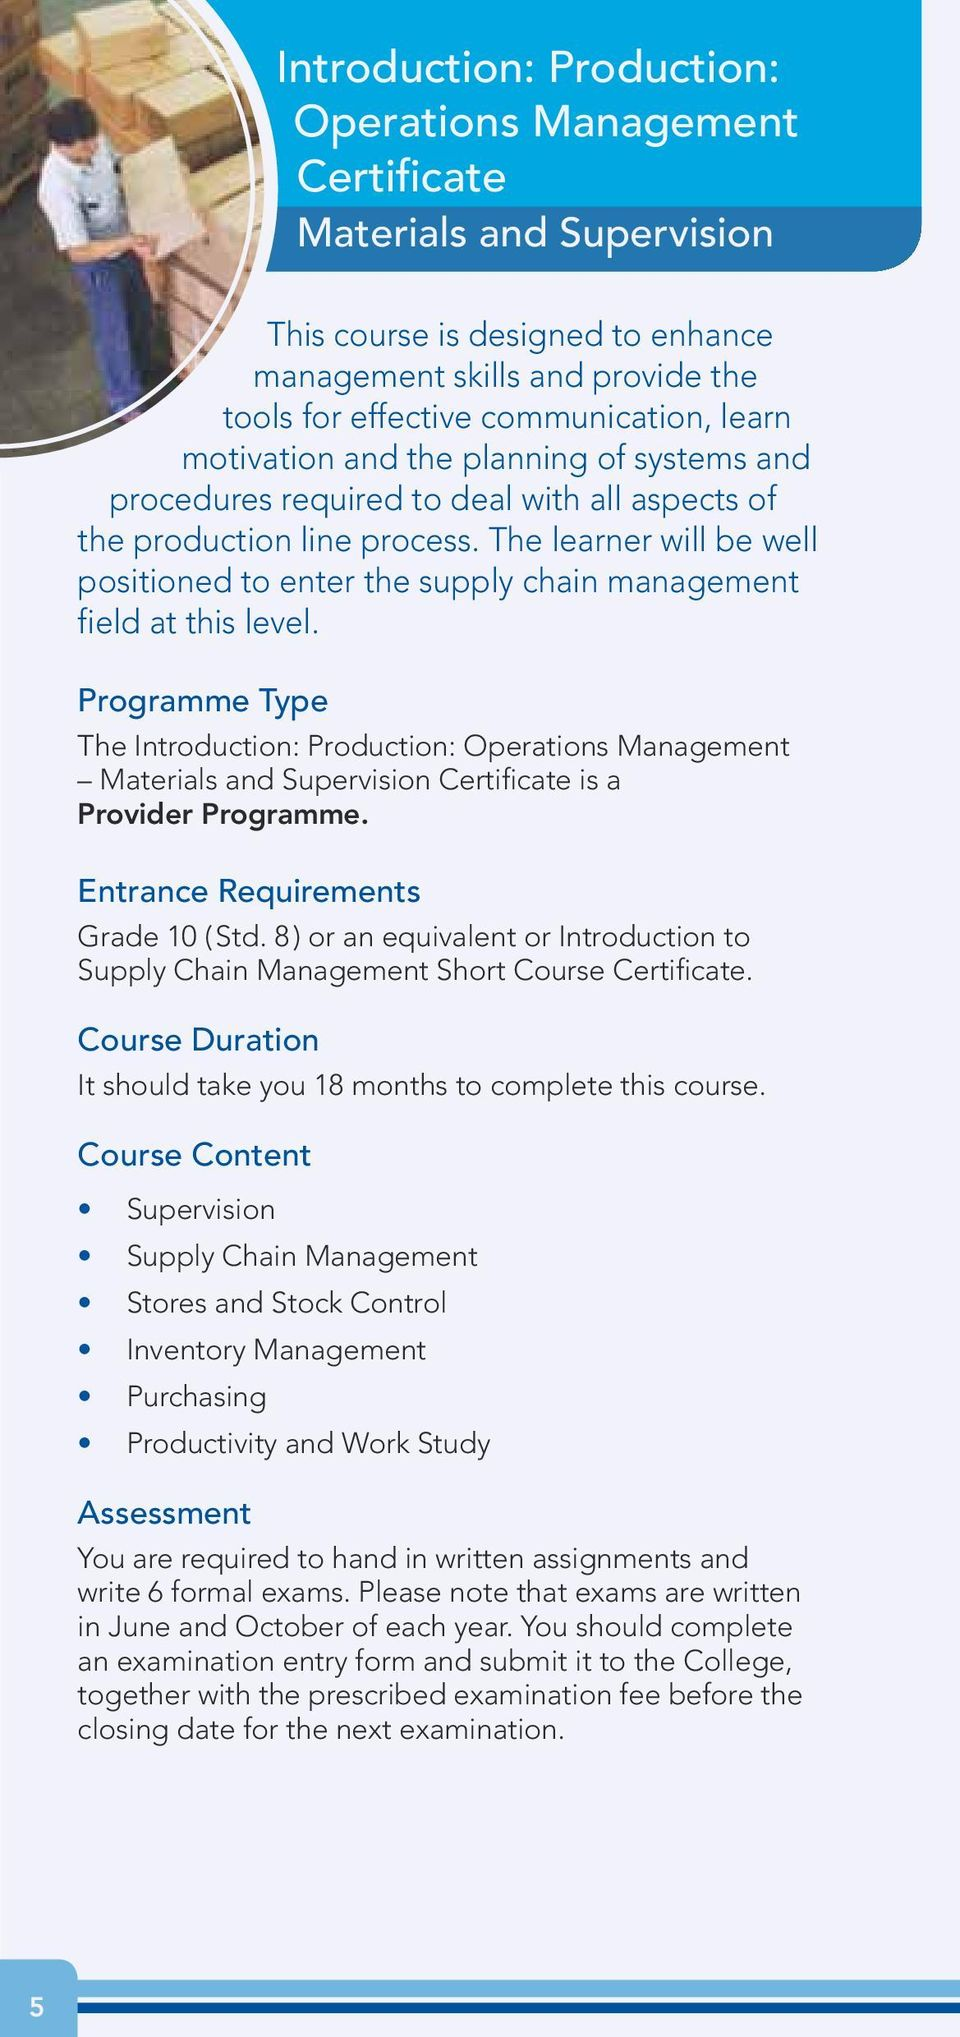 Programme Type The Introduction: Production: Operations Management Materials and Supervision is a Provider Programme. Entrance Requirements Grade 10 ( Std.